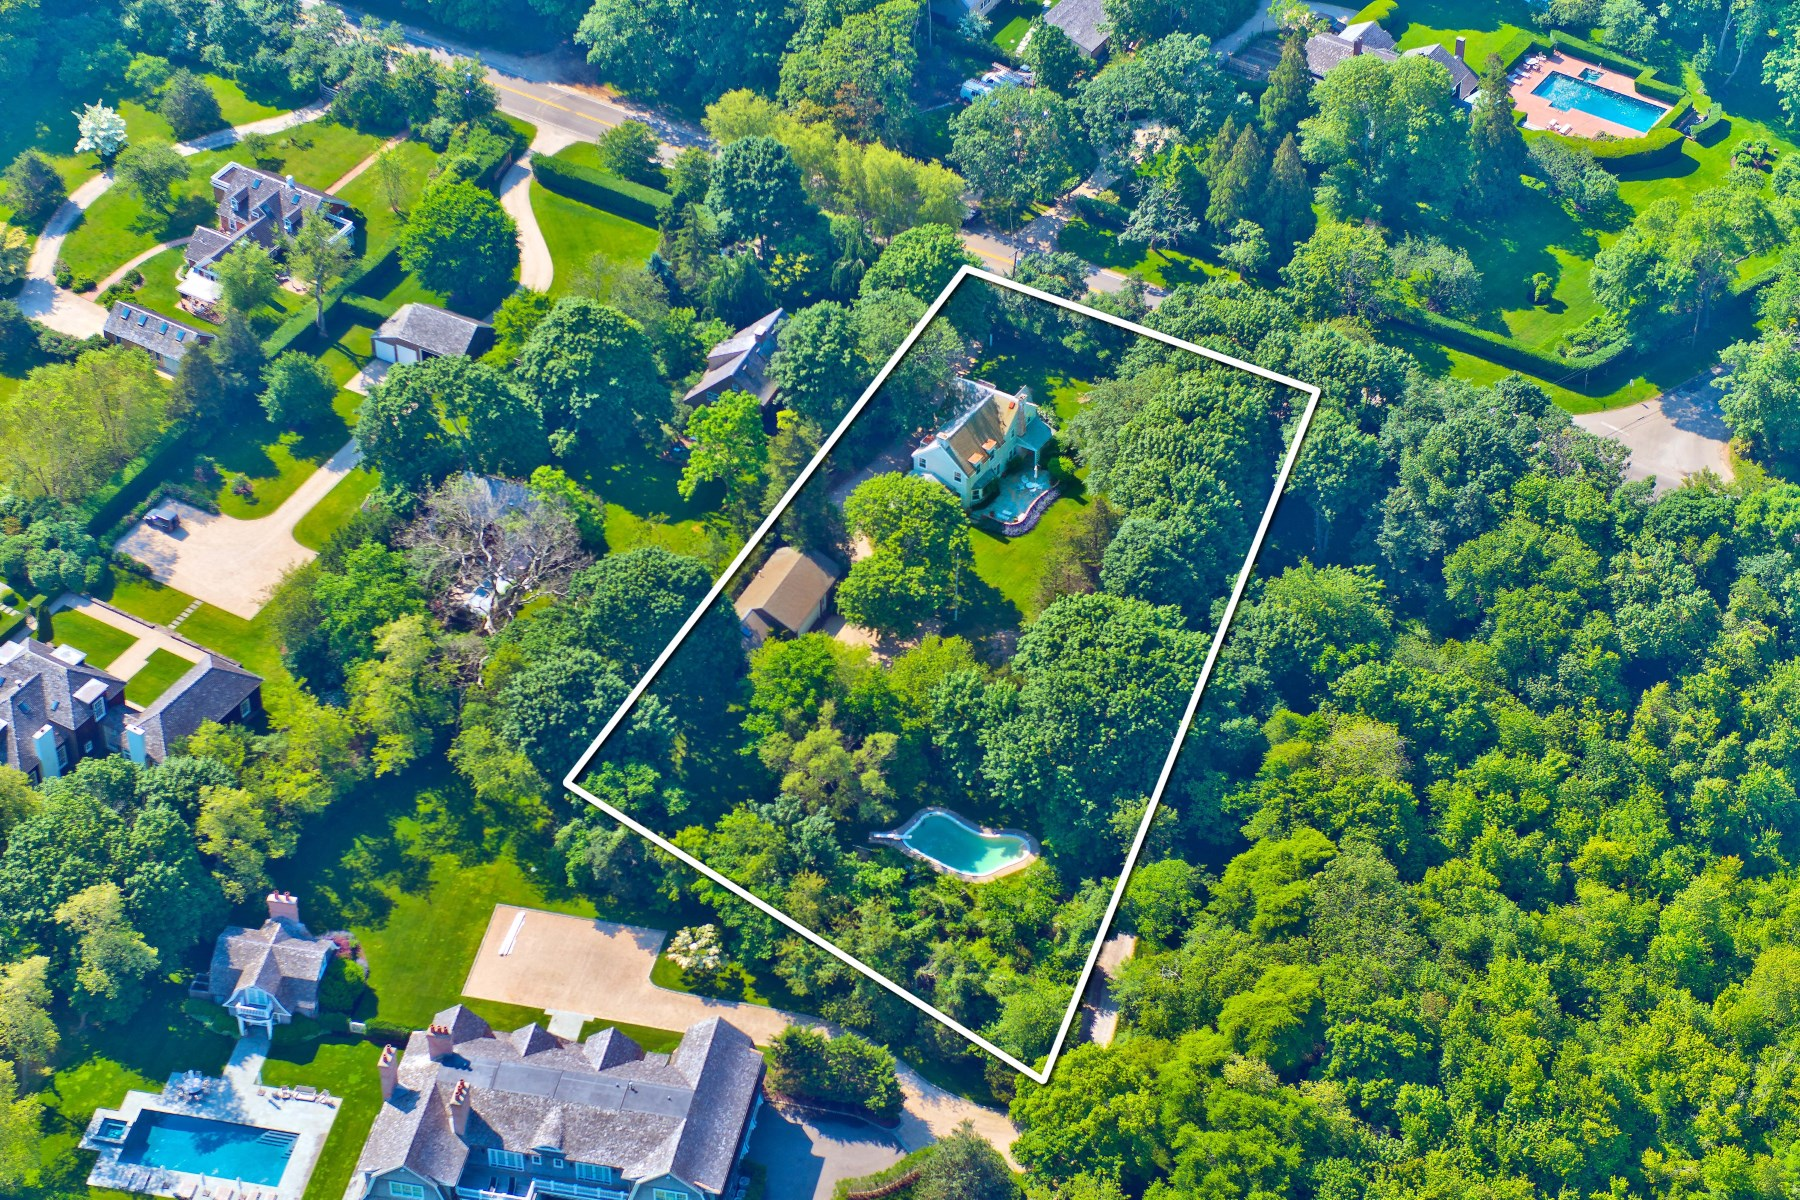 Moradia para Venda às 1+/- Acres, Bridgehampton South Bridgehampton, Nova York, 11932 Estados Unidos